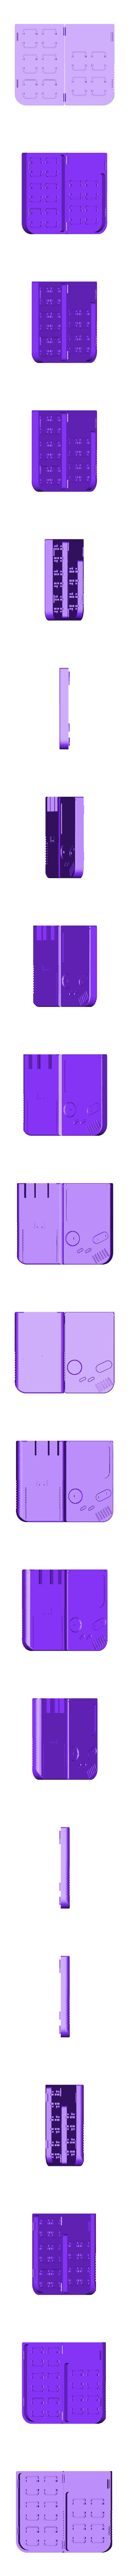 Main Body.stl Download STL file Game Boy Style Nintendo Switch Cartridge Game Case • 3D printer model, NKpolymers